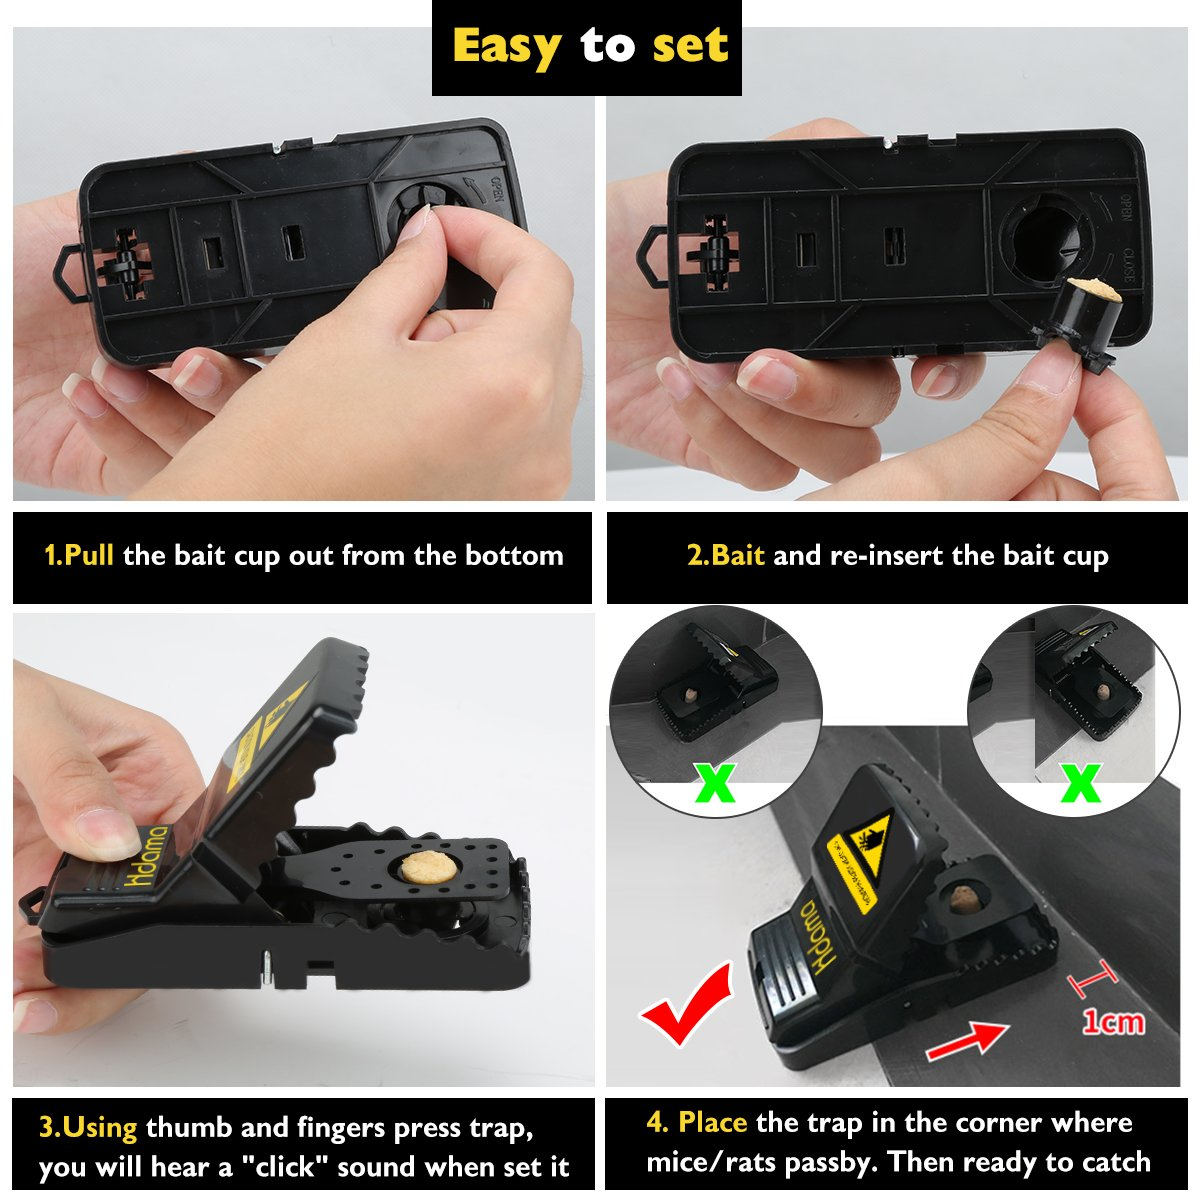 Mouse Traps That Work Rat Trap Outdoor Indoor Best Snap Traps for Mouse//Mice Safe and Reusable 6 Pack Humane Mouse and Rat Traps Mouse trap